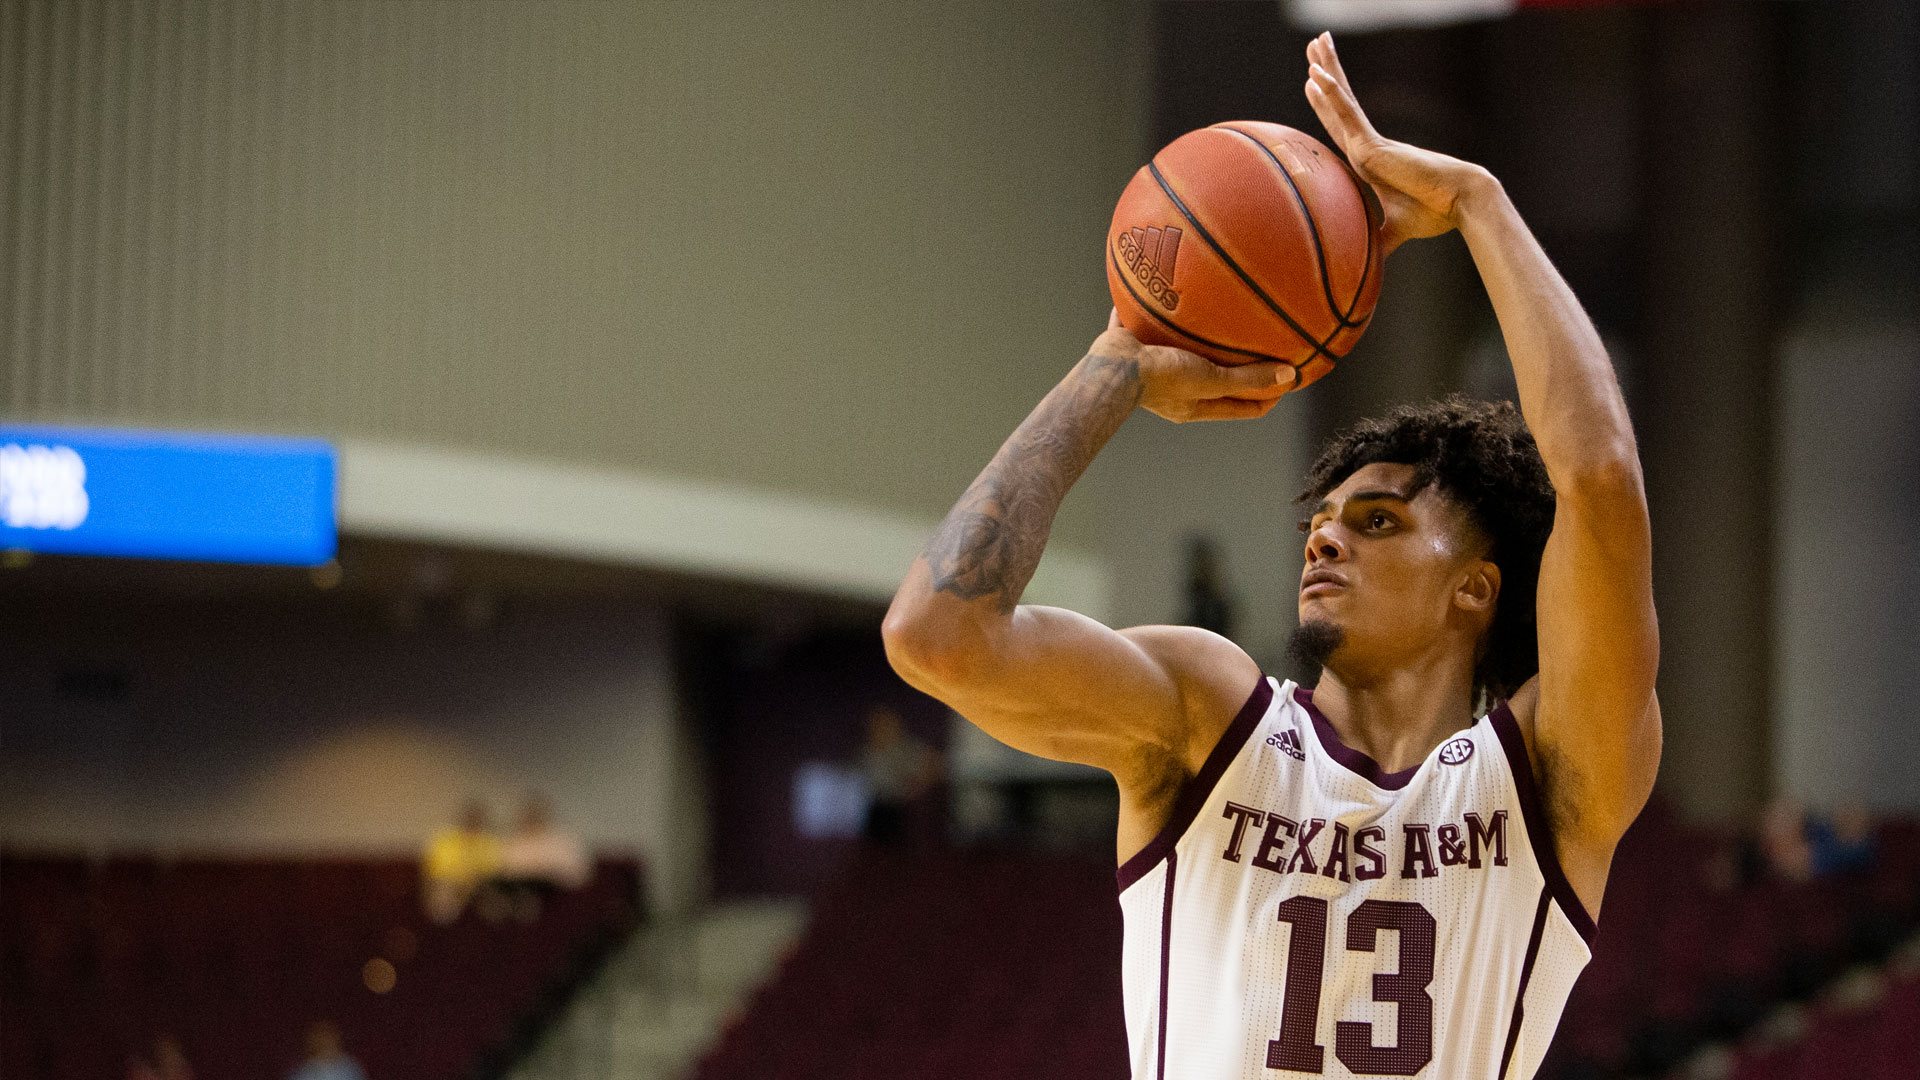 aggies unable to get by minnesota in vancouver - texas a&m